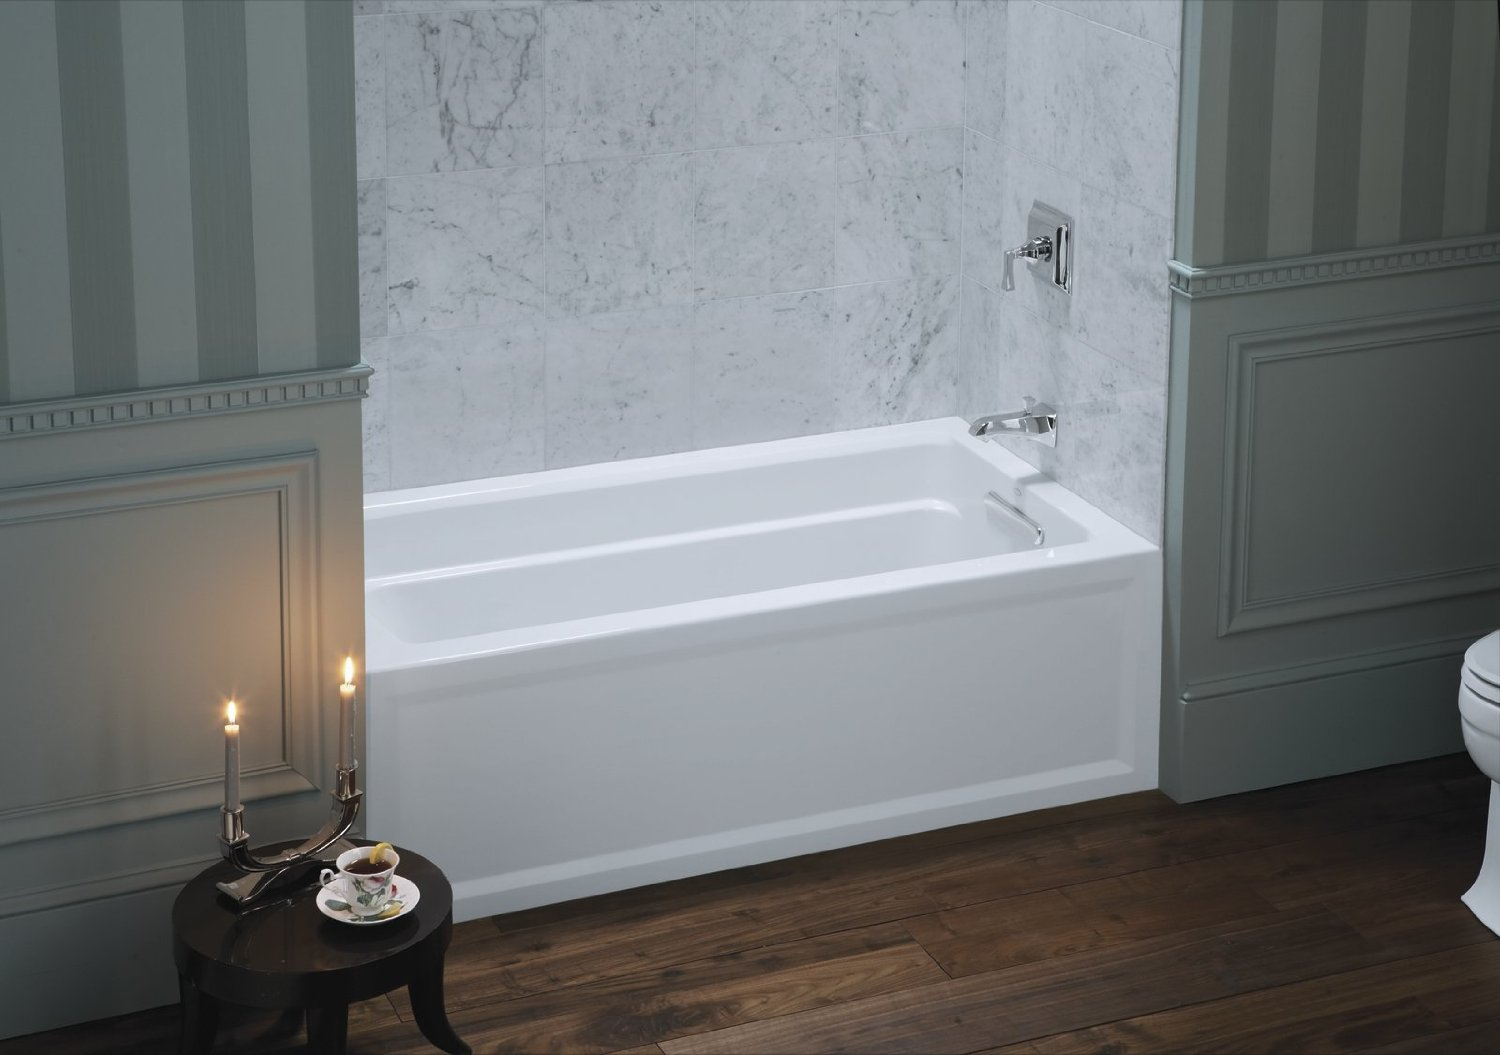 soaking tub is not ordinary tub that you often imagine of tub for ...